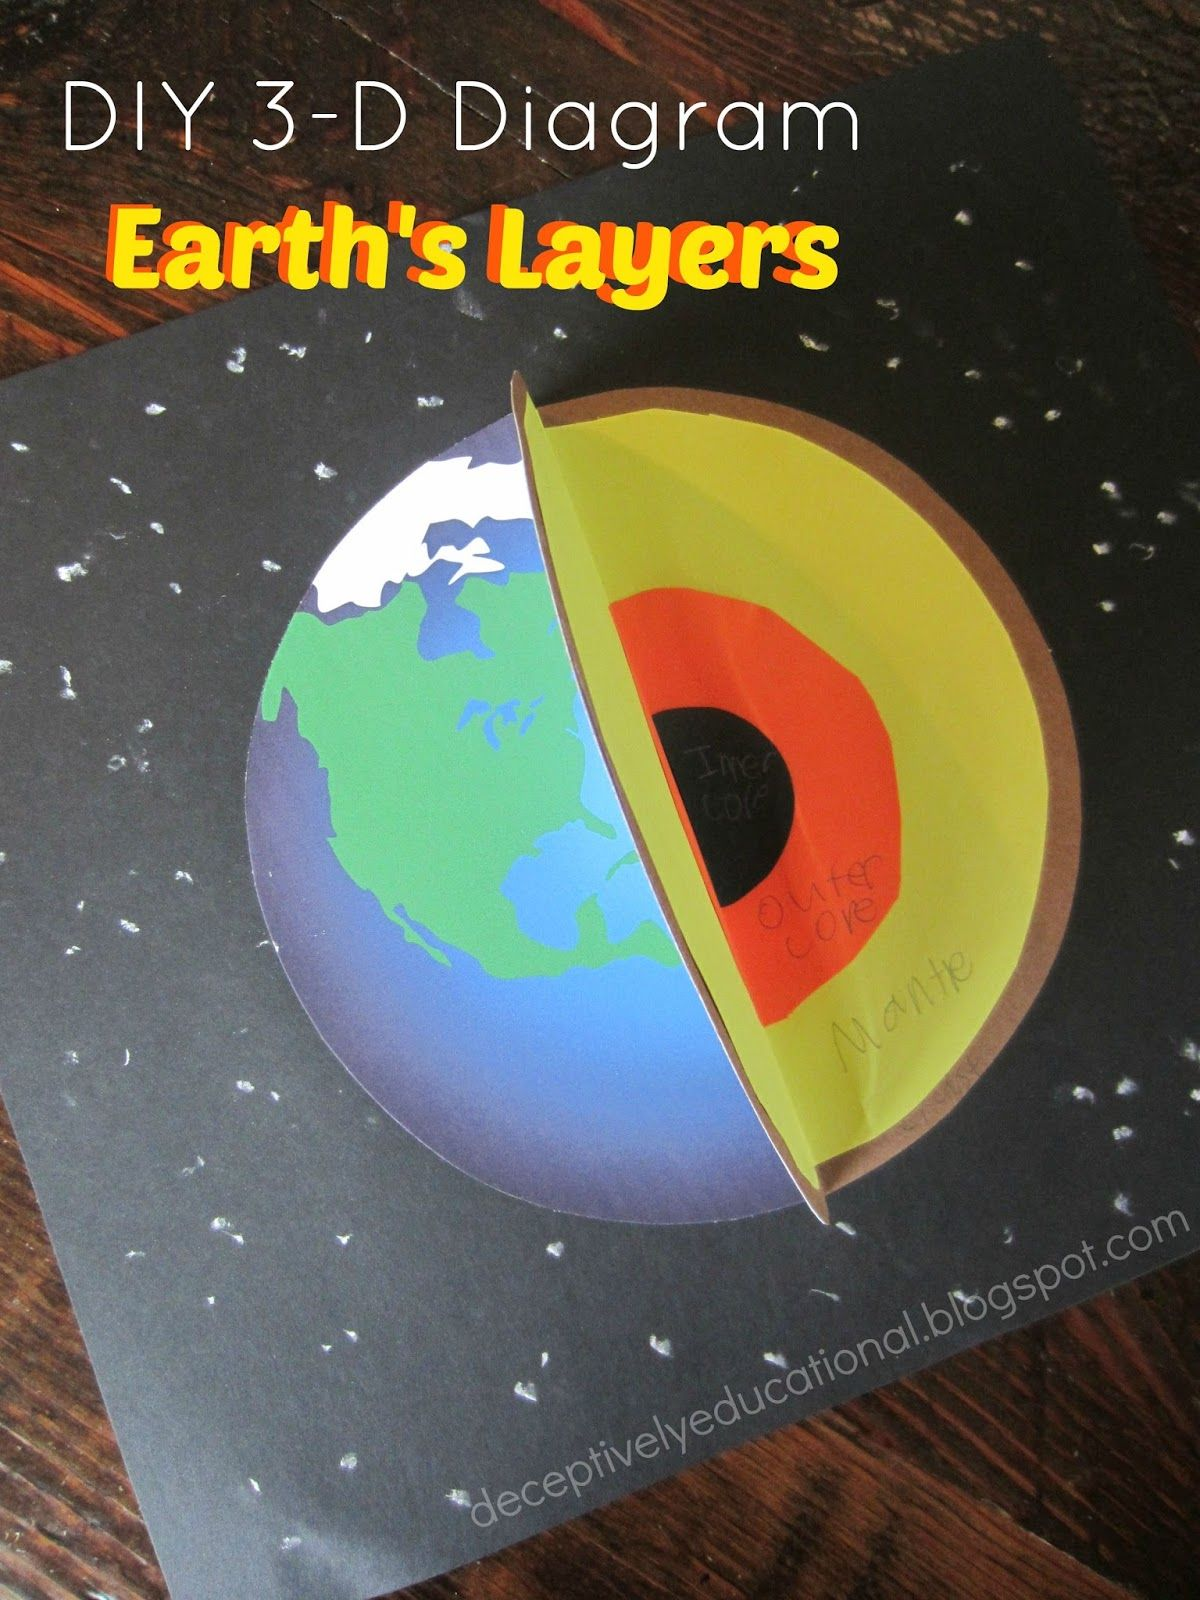 relentlessly fun deceptively educational earth s layers diy 3 d diagram [ 1200 x 1600 Pixel ]